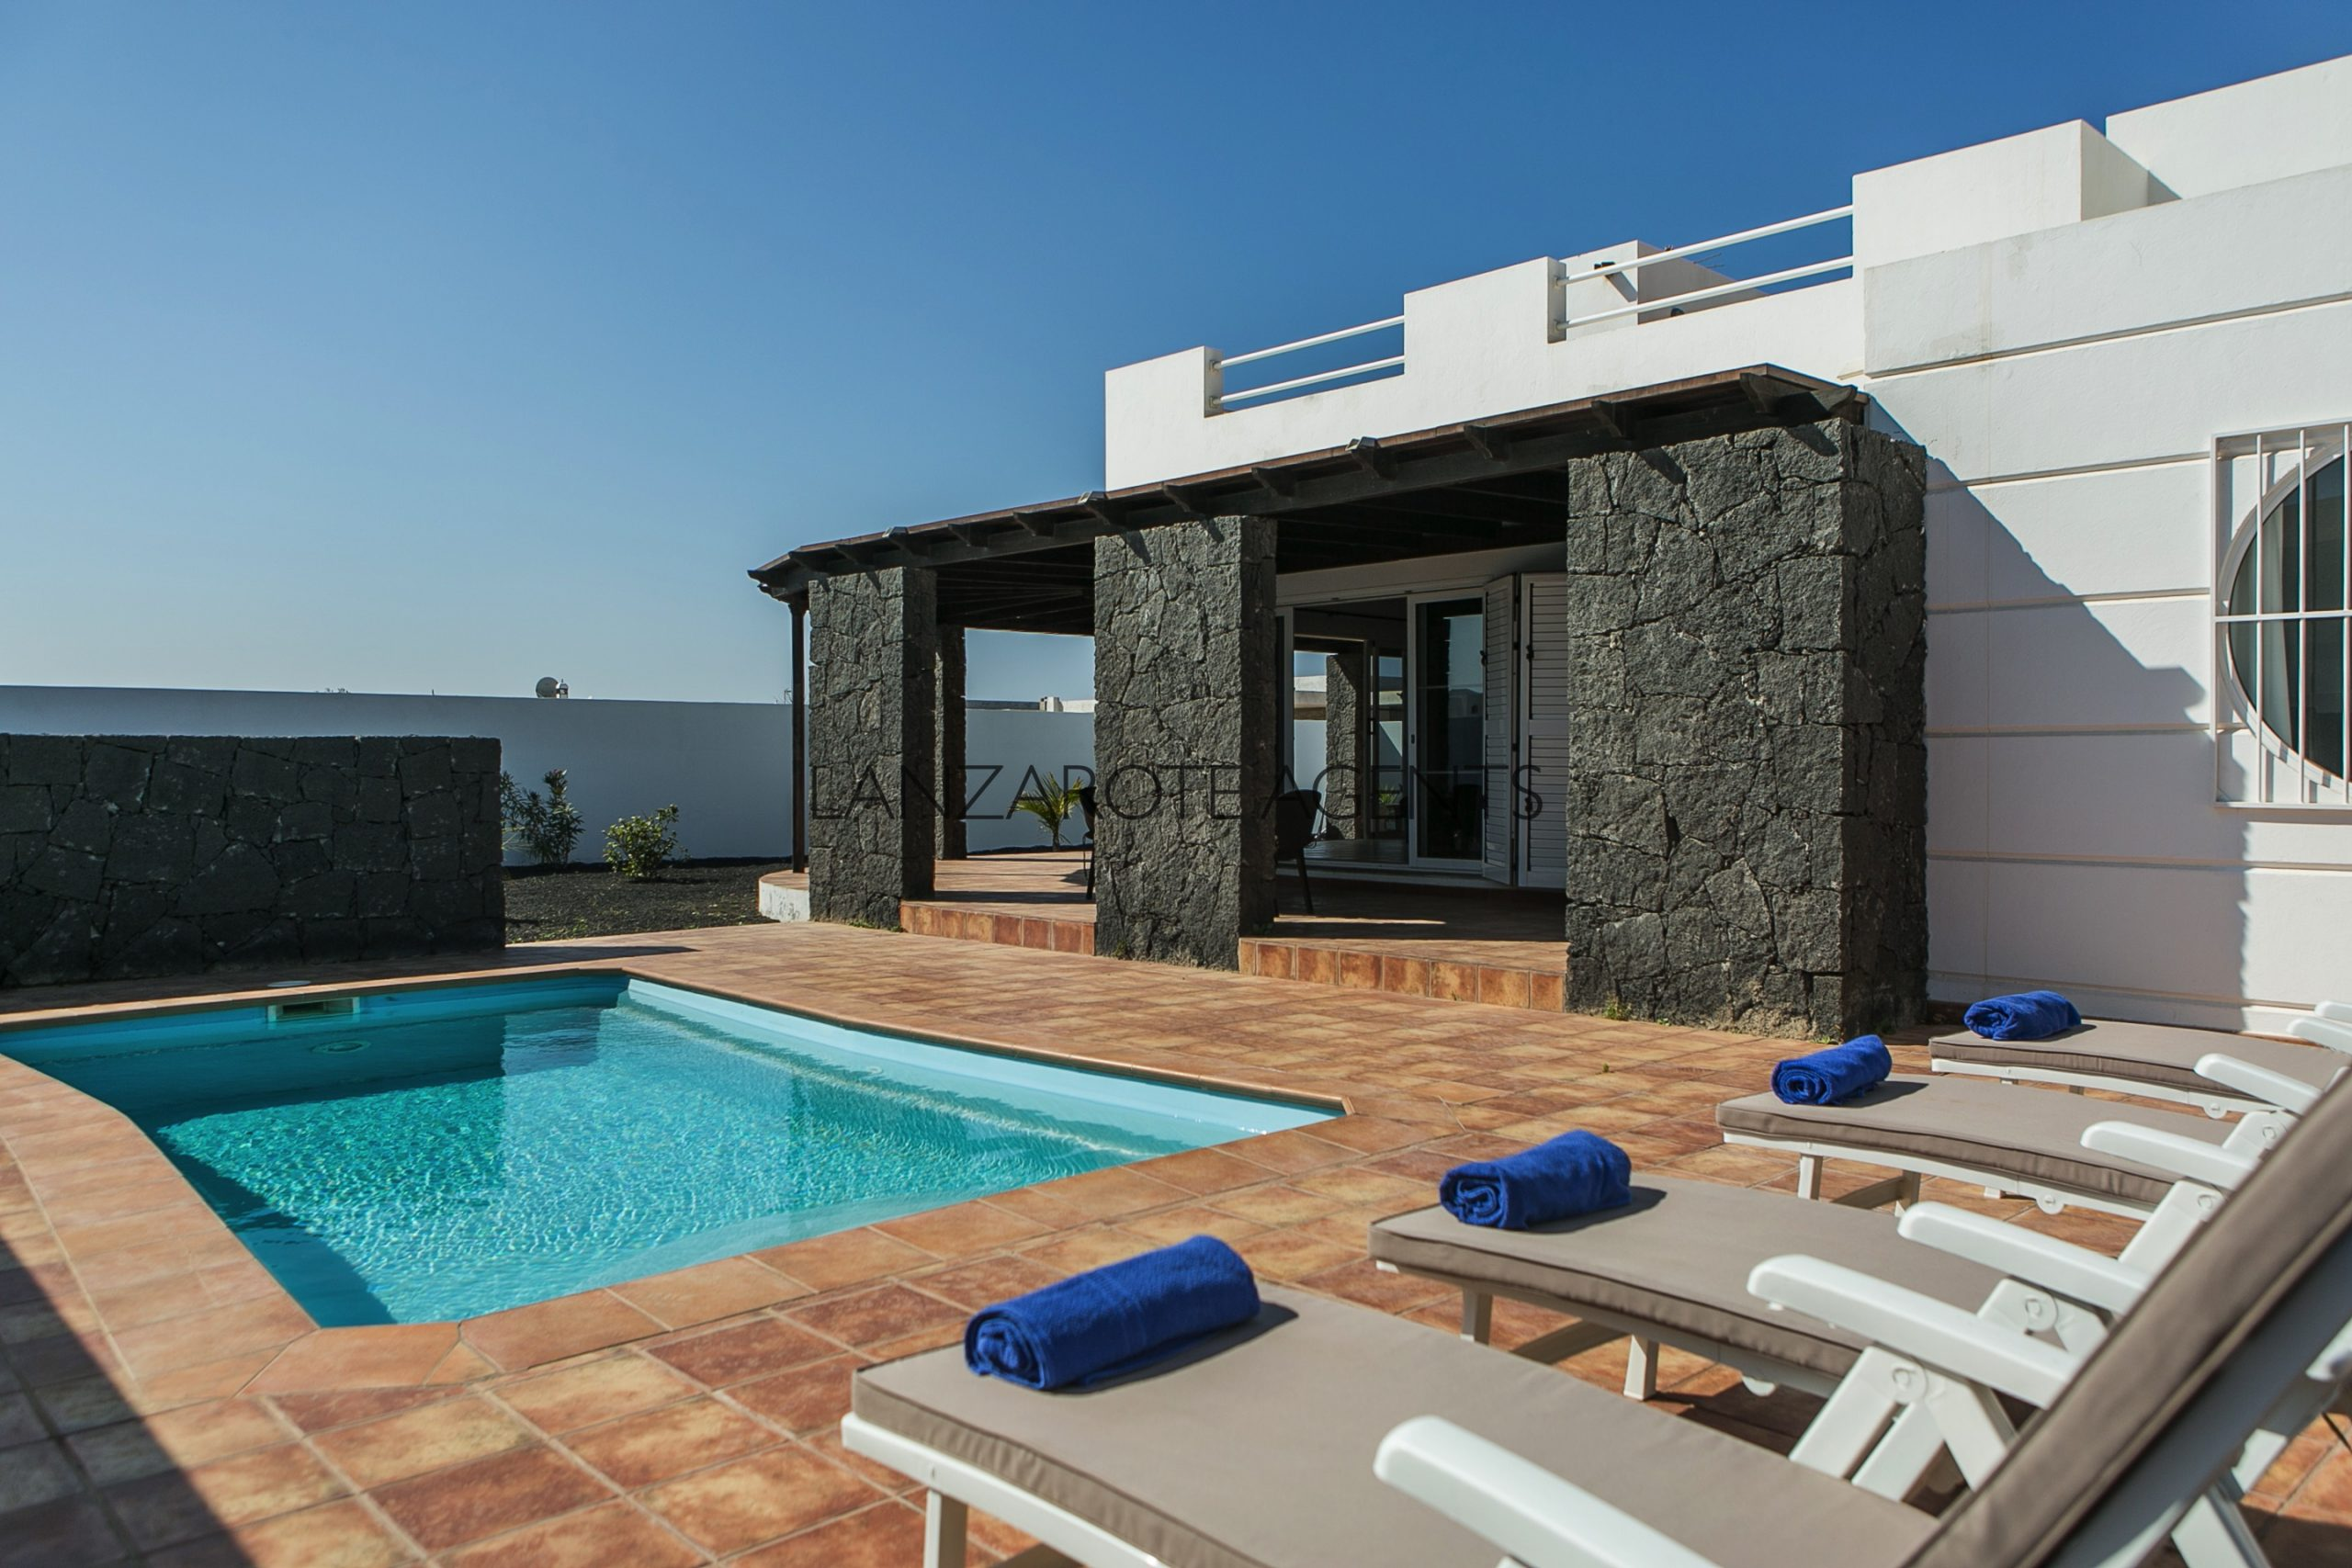 5 Bedroom Villa in Playa Blanca with Vv License, all ready to continue the rental business